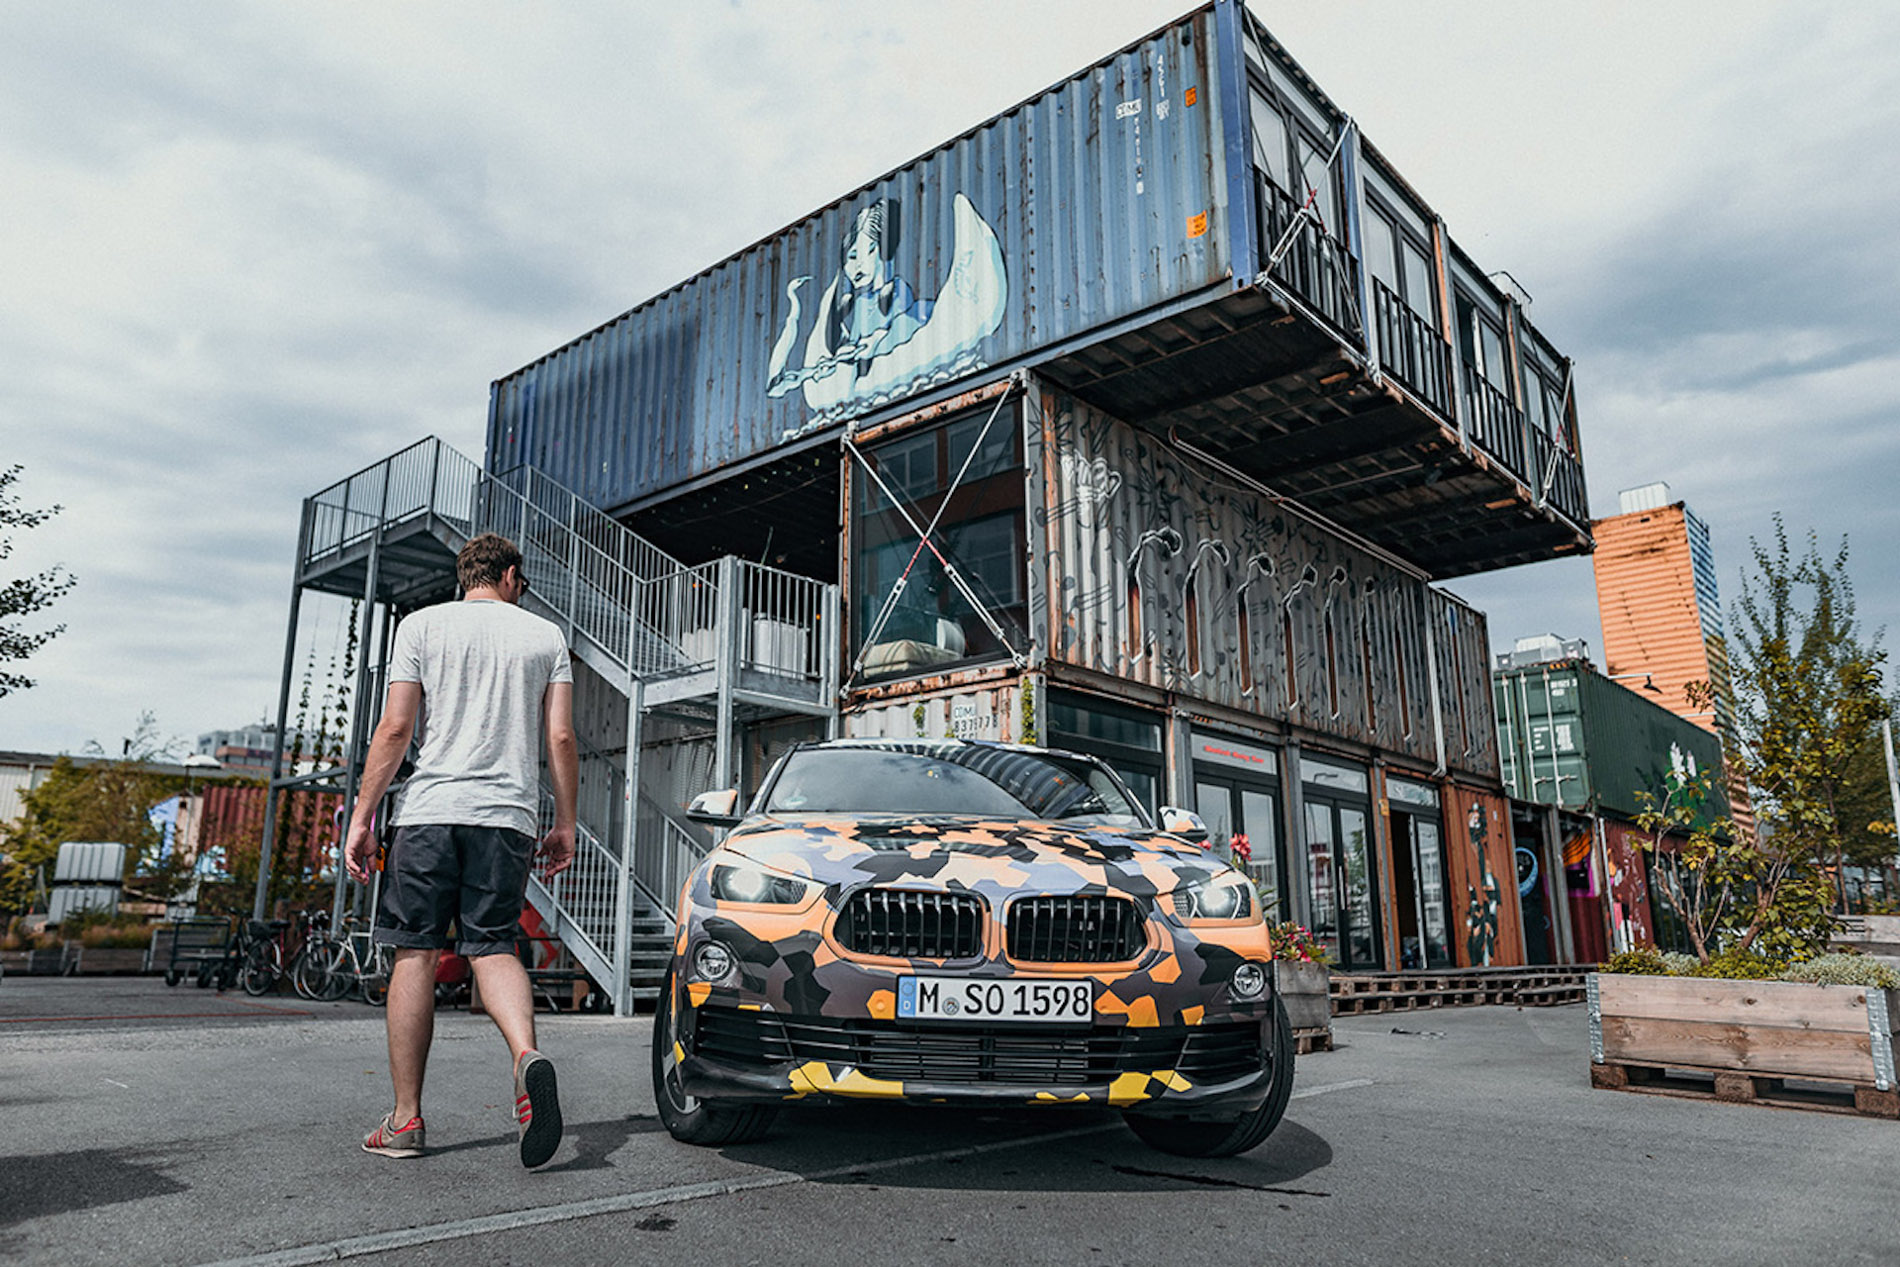 Production BMW X2 ficially Teased in Orange Camo